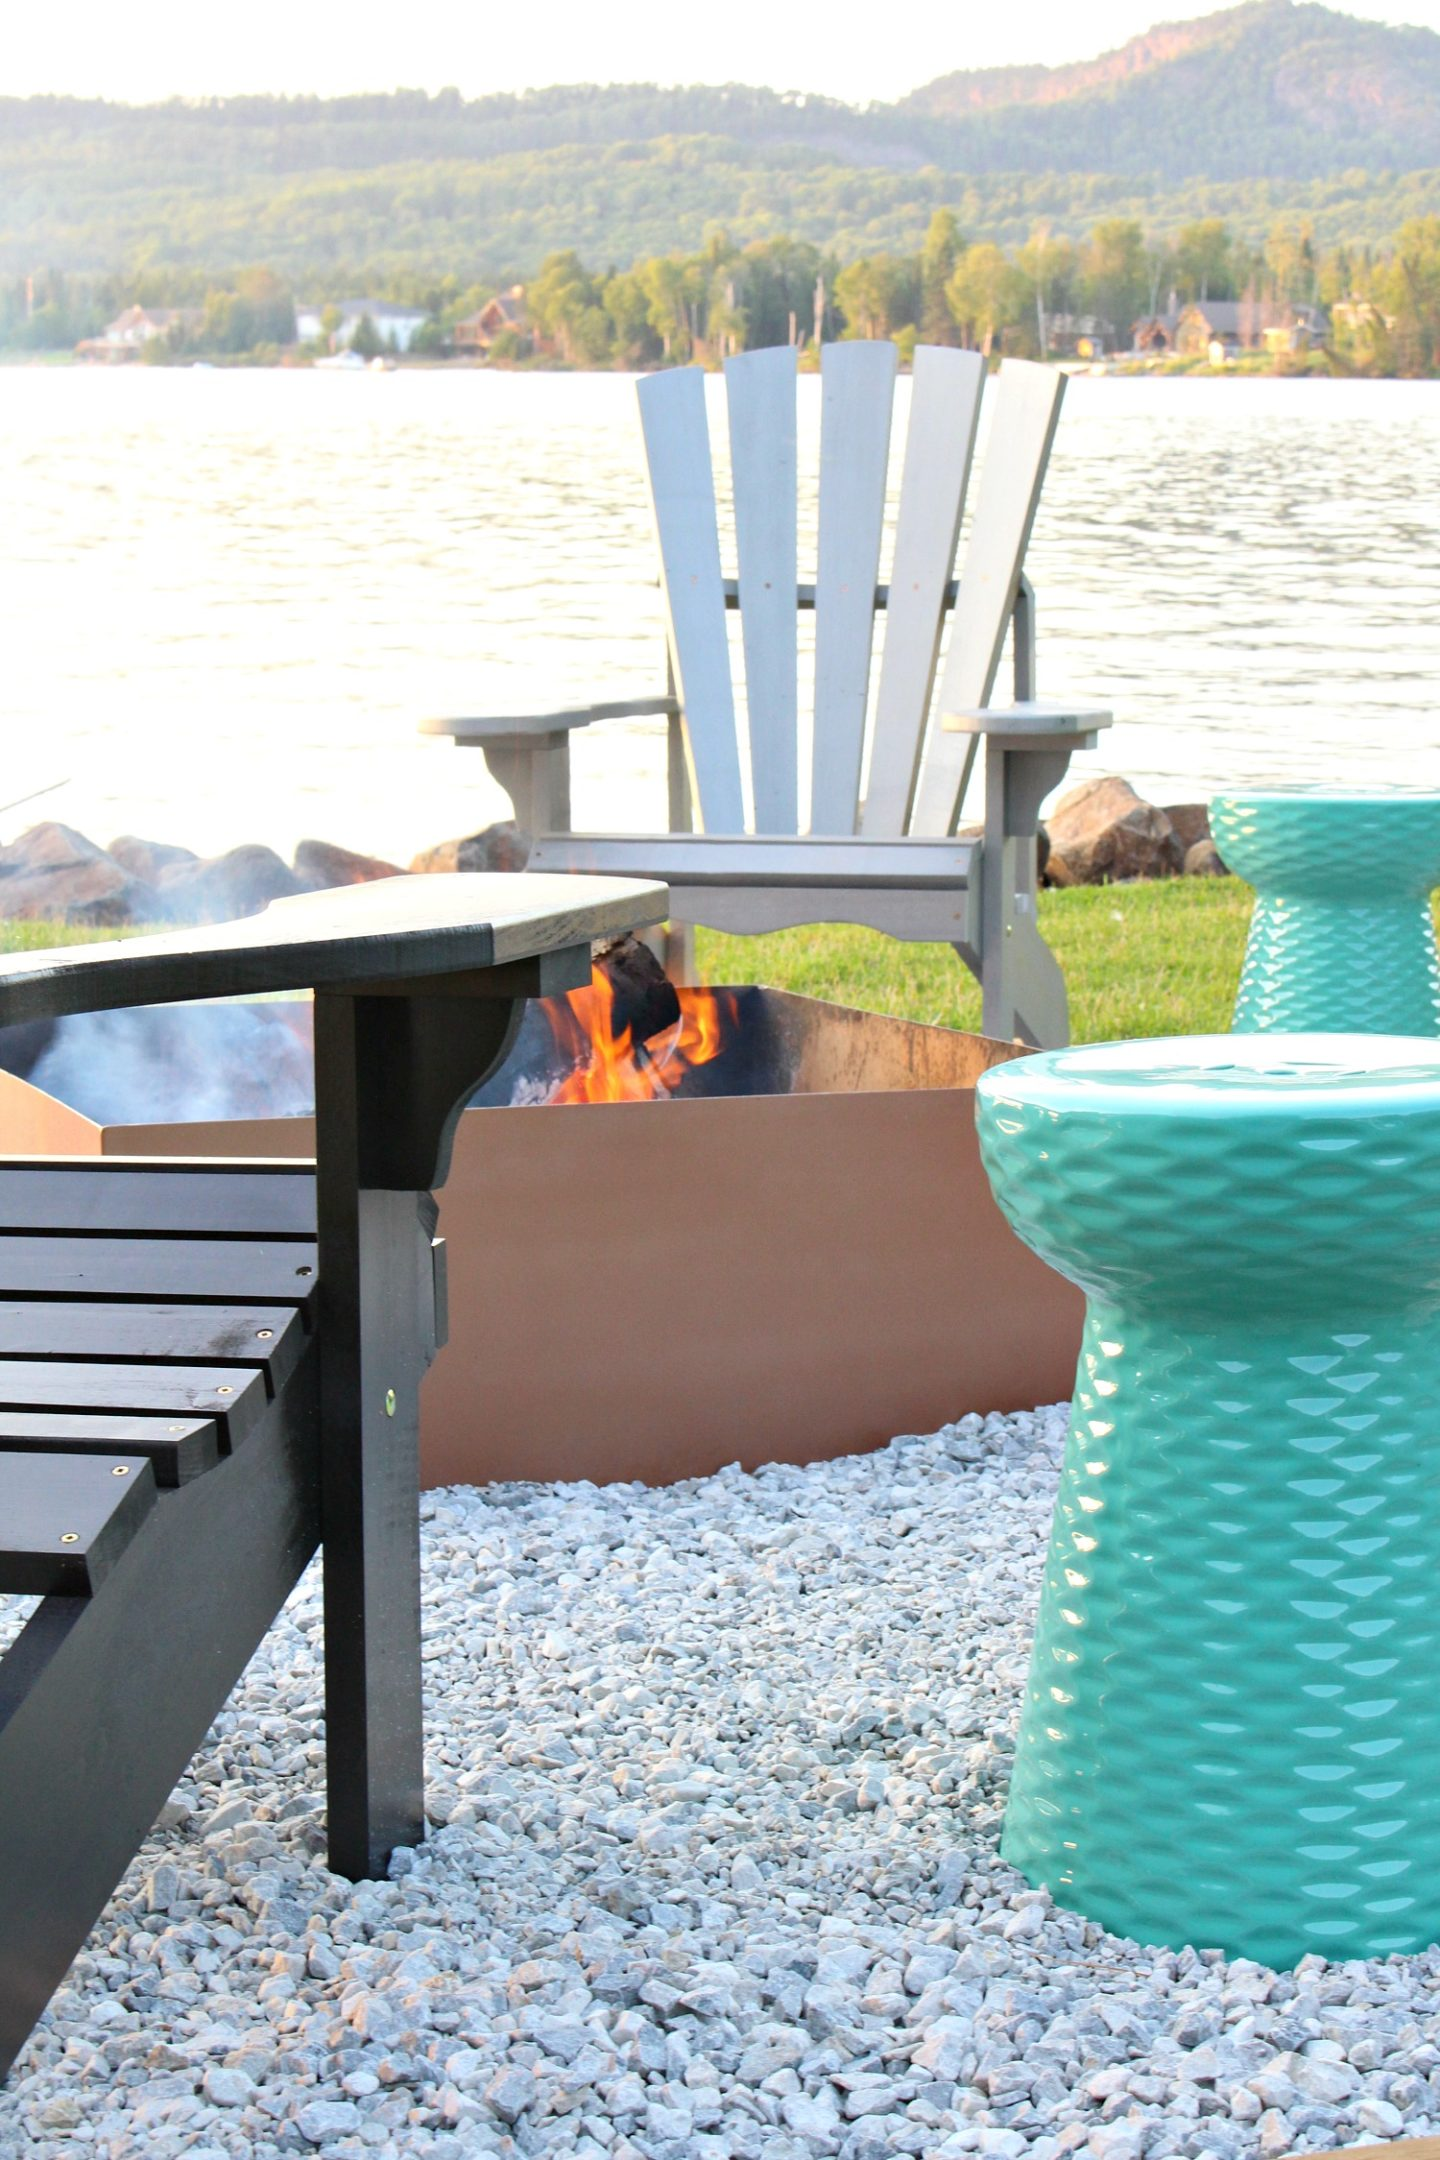 Unique Fire Pit Makeover + DIY Ombre Adirondack Chairs (Sponsored by The Home Depot Canada)